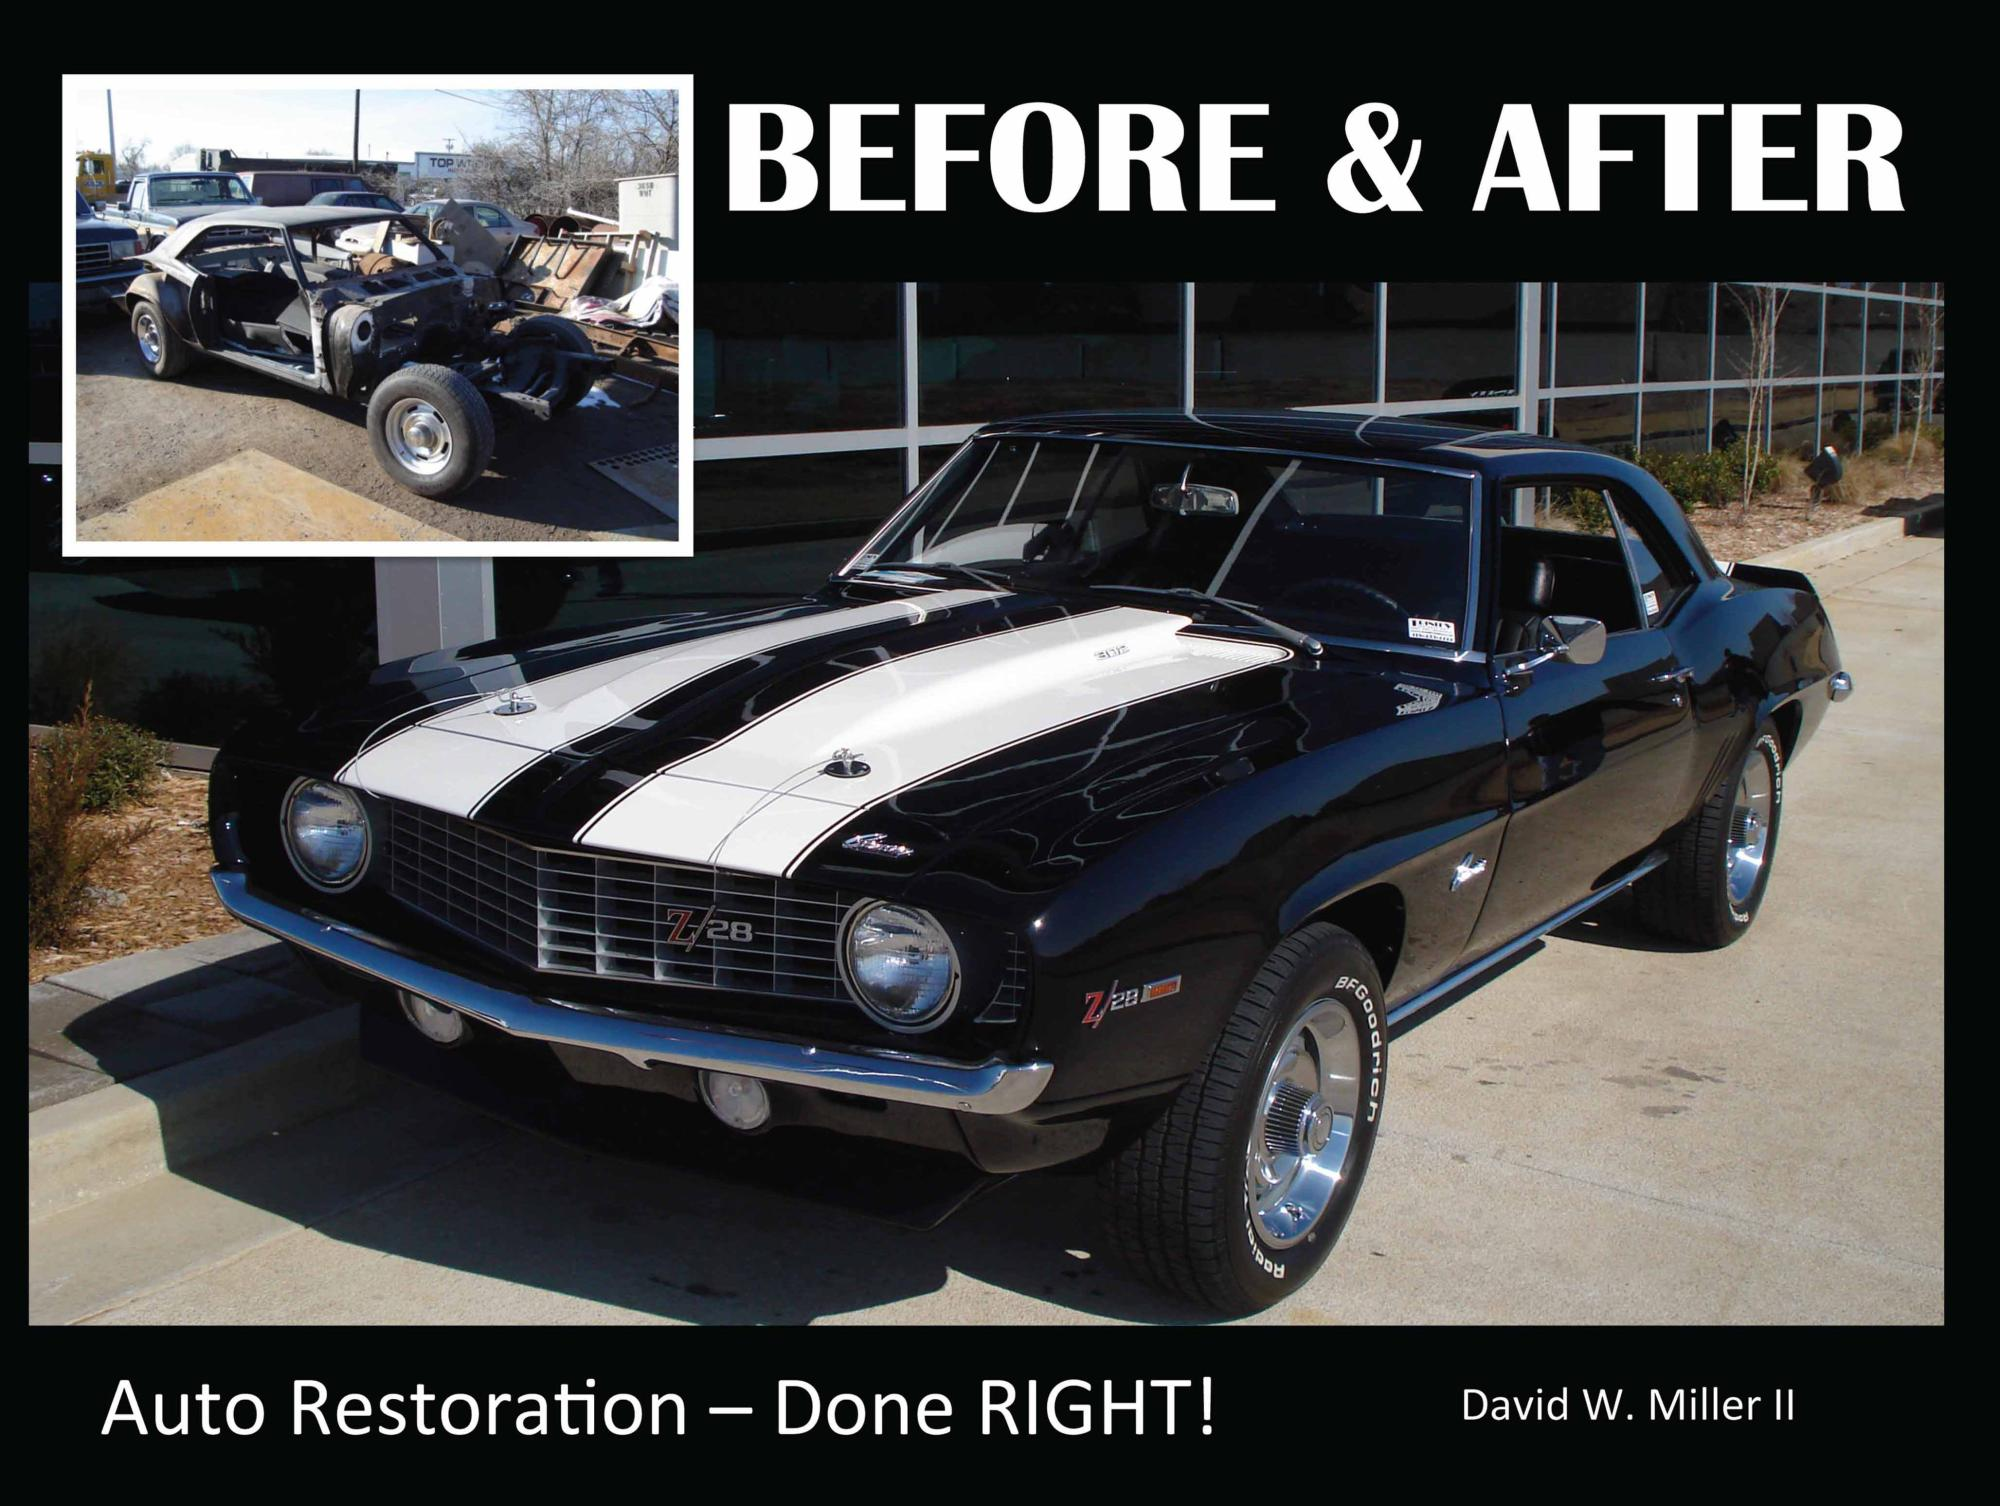 BOOK, Brand New Muscle Car, BEFORE & AFTER